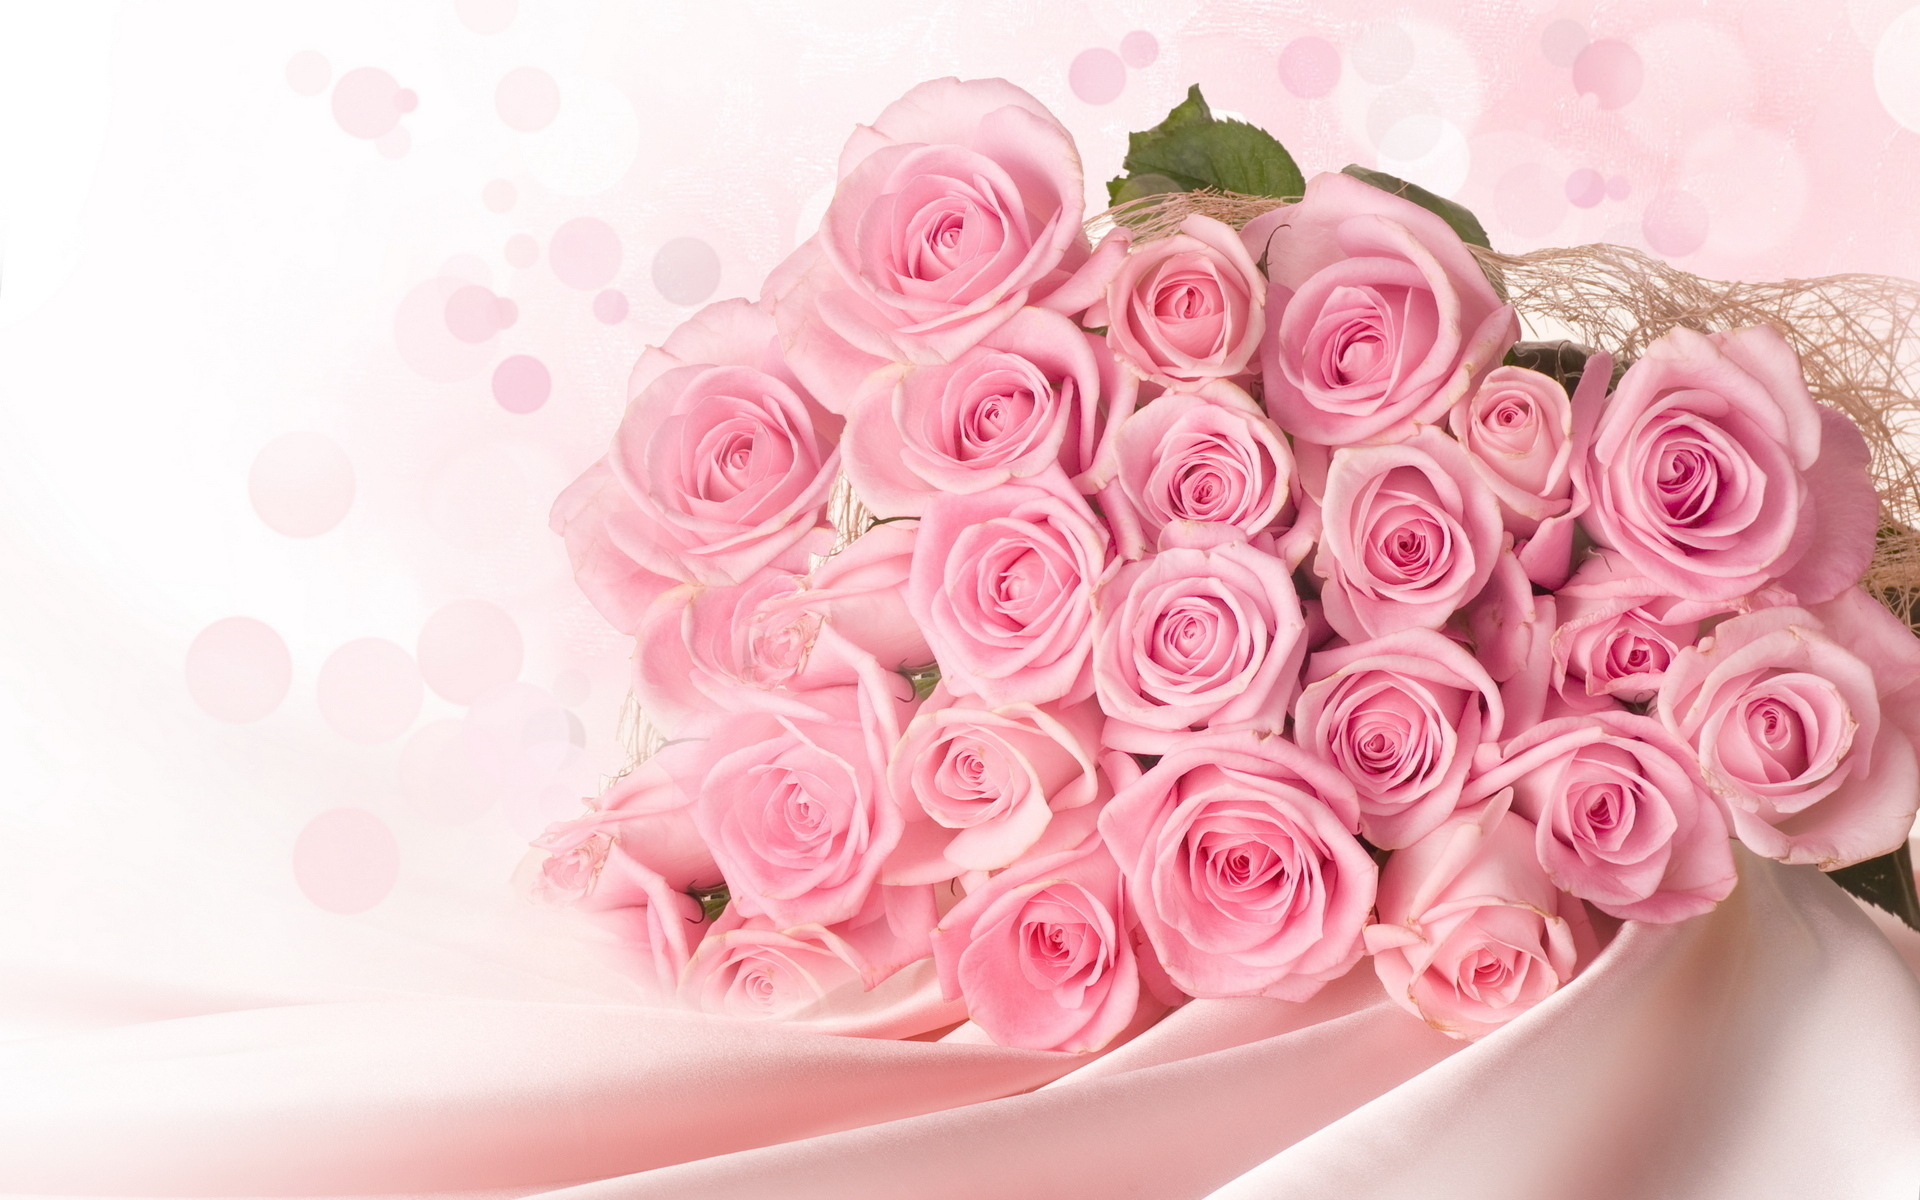 Pink Roses Background Wallpaper High Definition High Quality